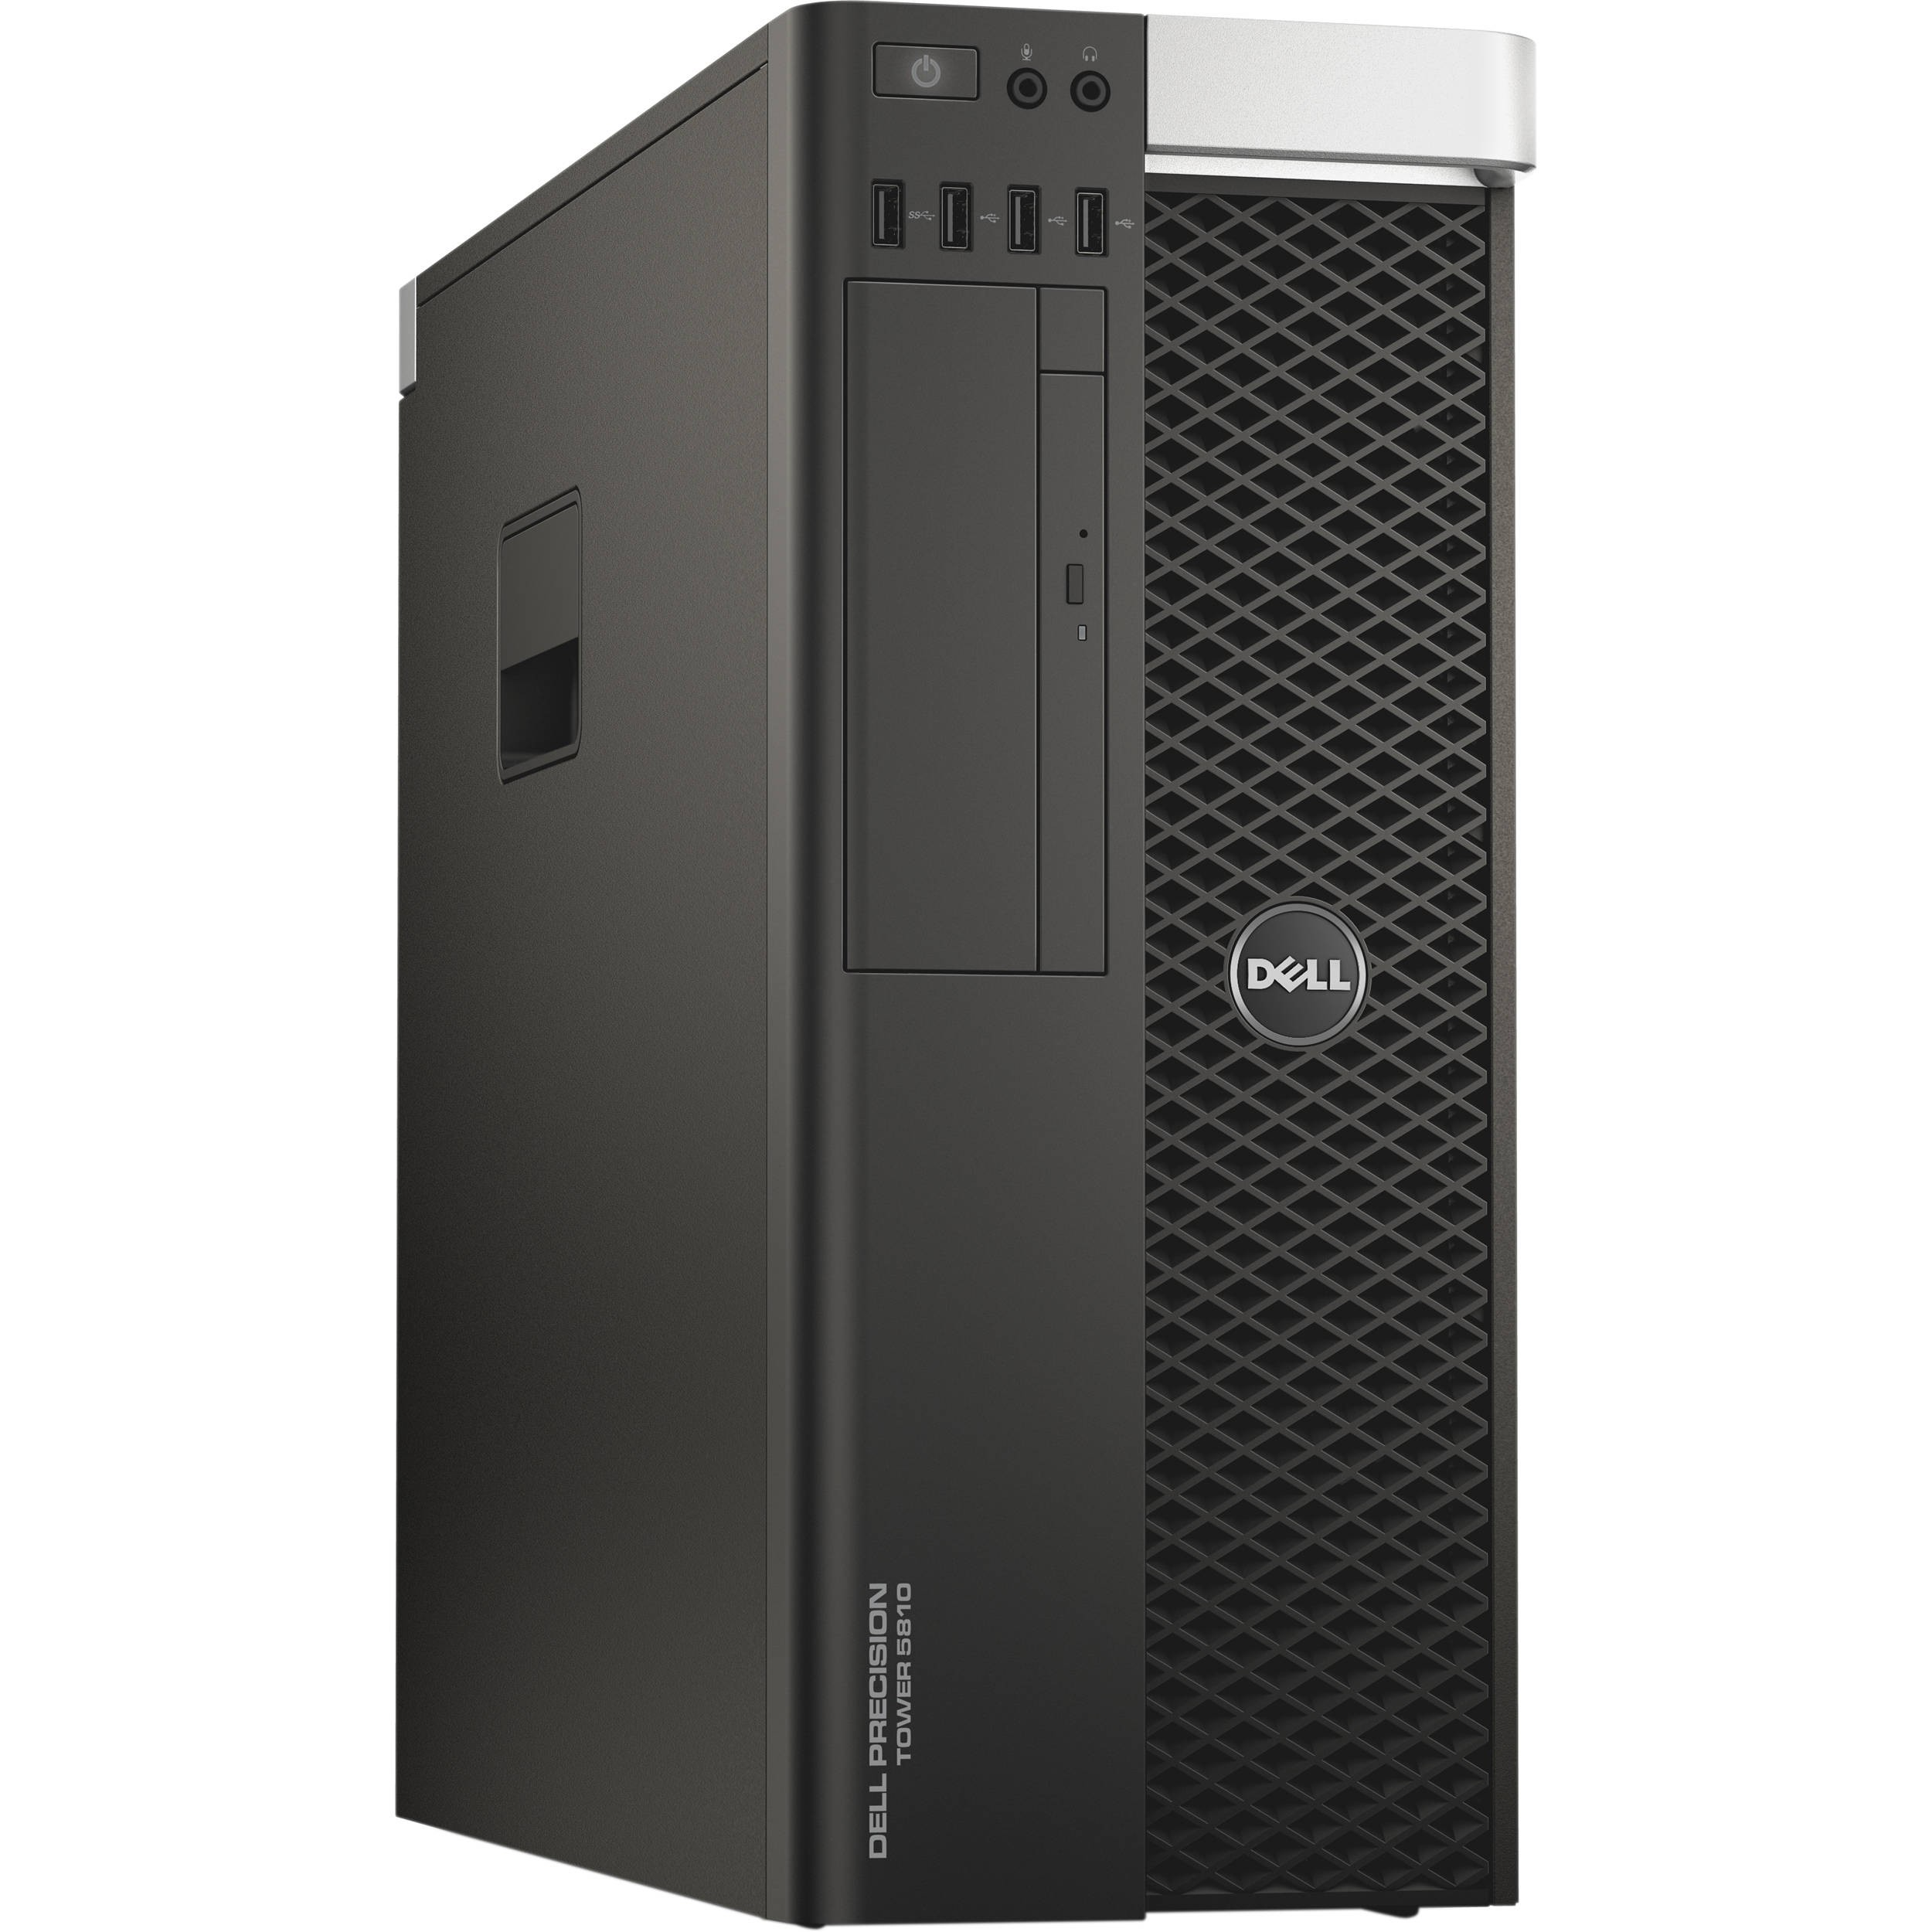 DRIVERS UPDATE: DELL R210 AHCI